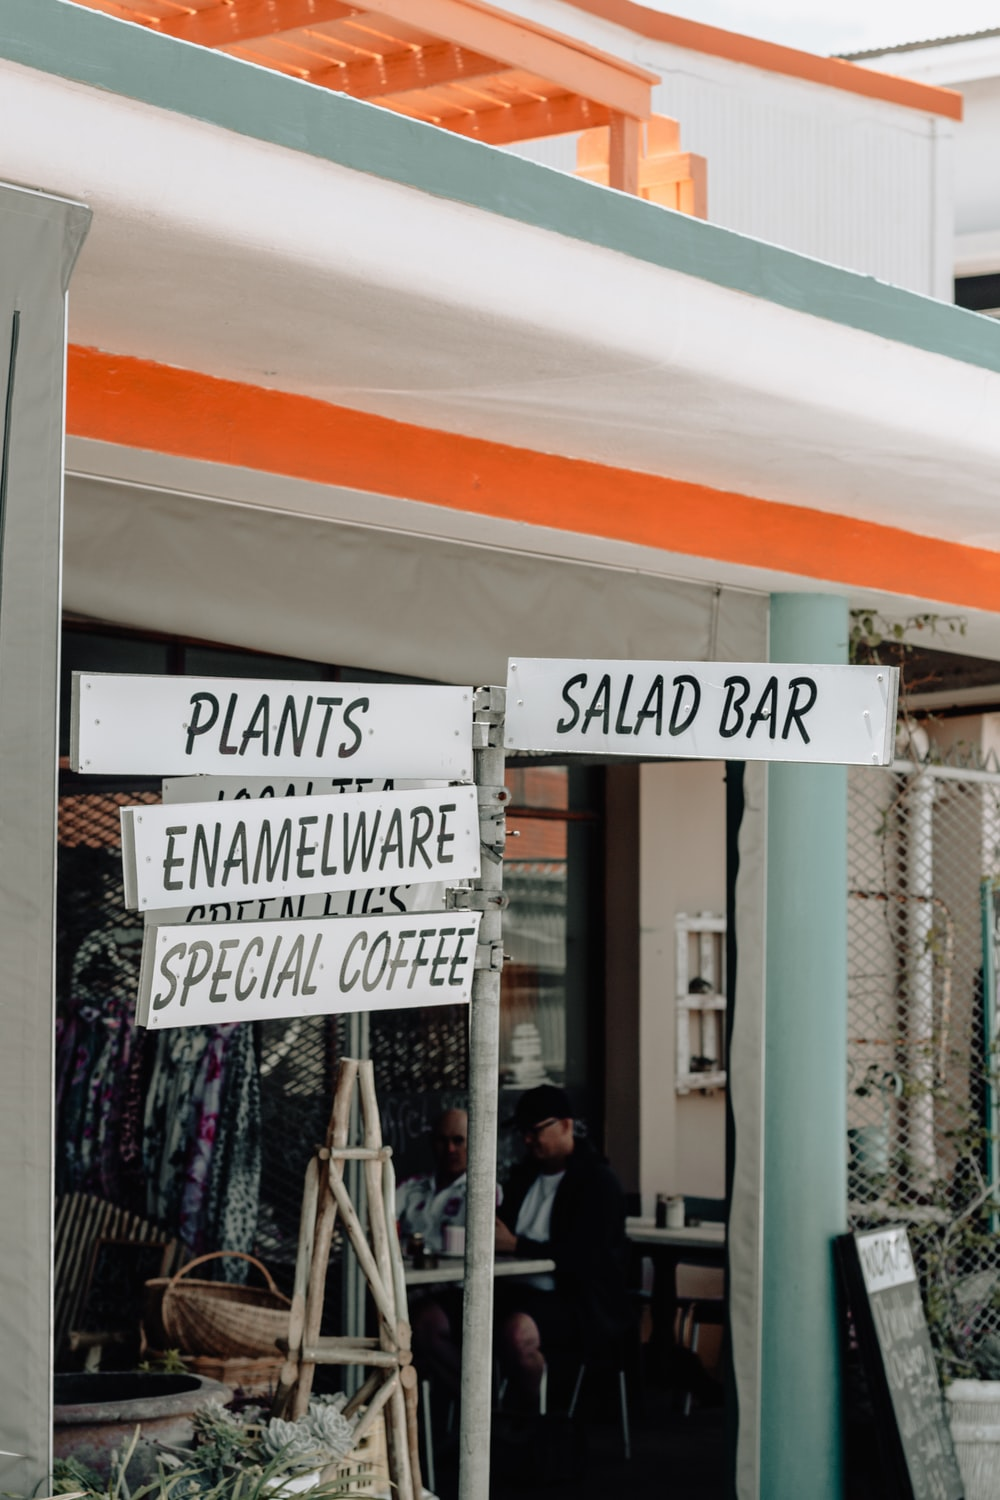 plants, enamelware, special coffee, and salad bar signage